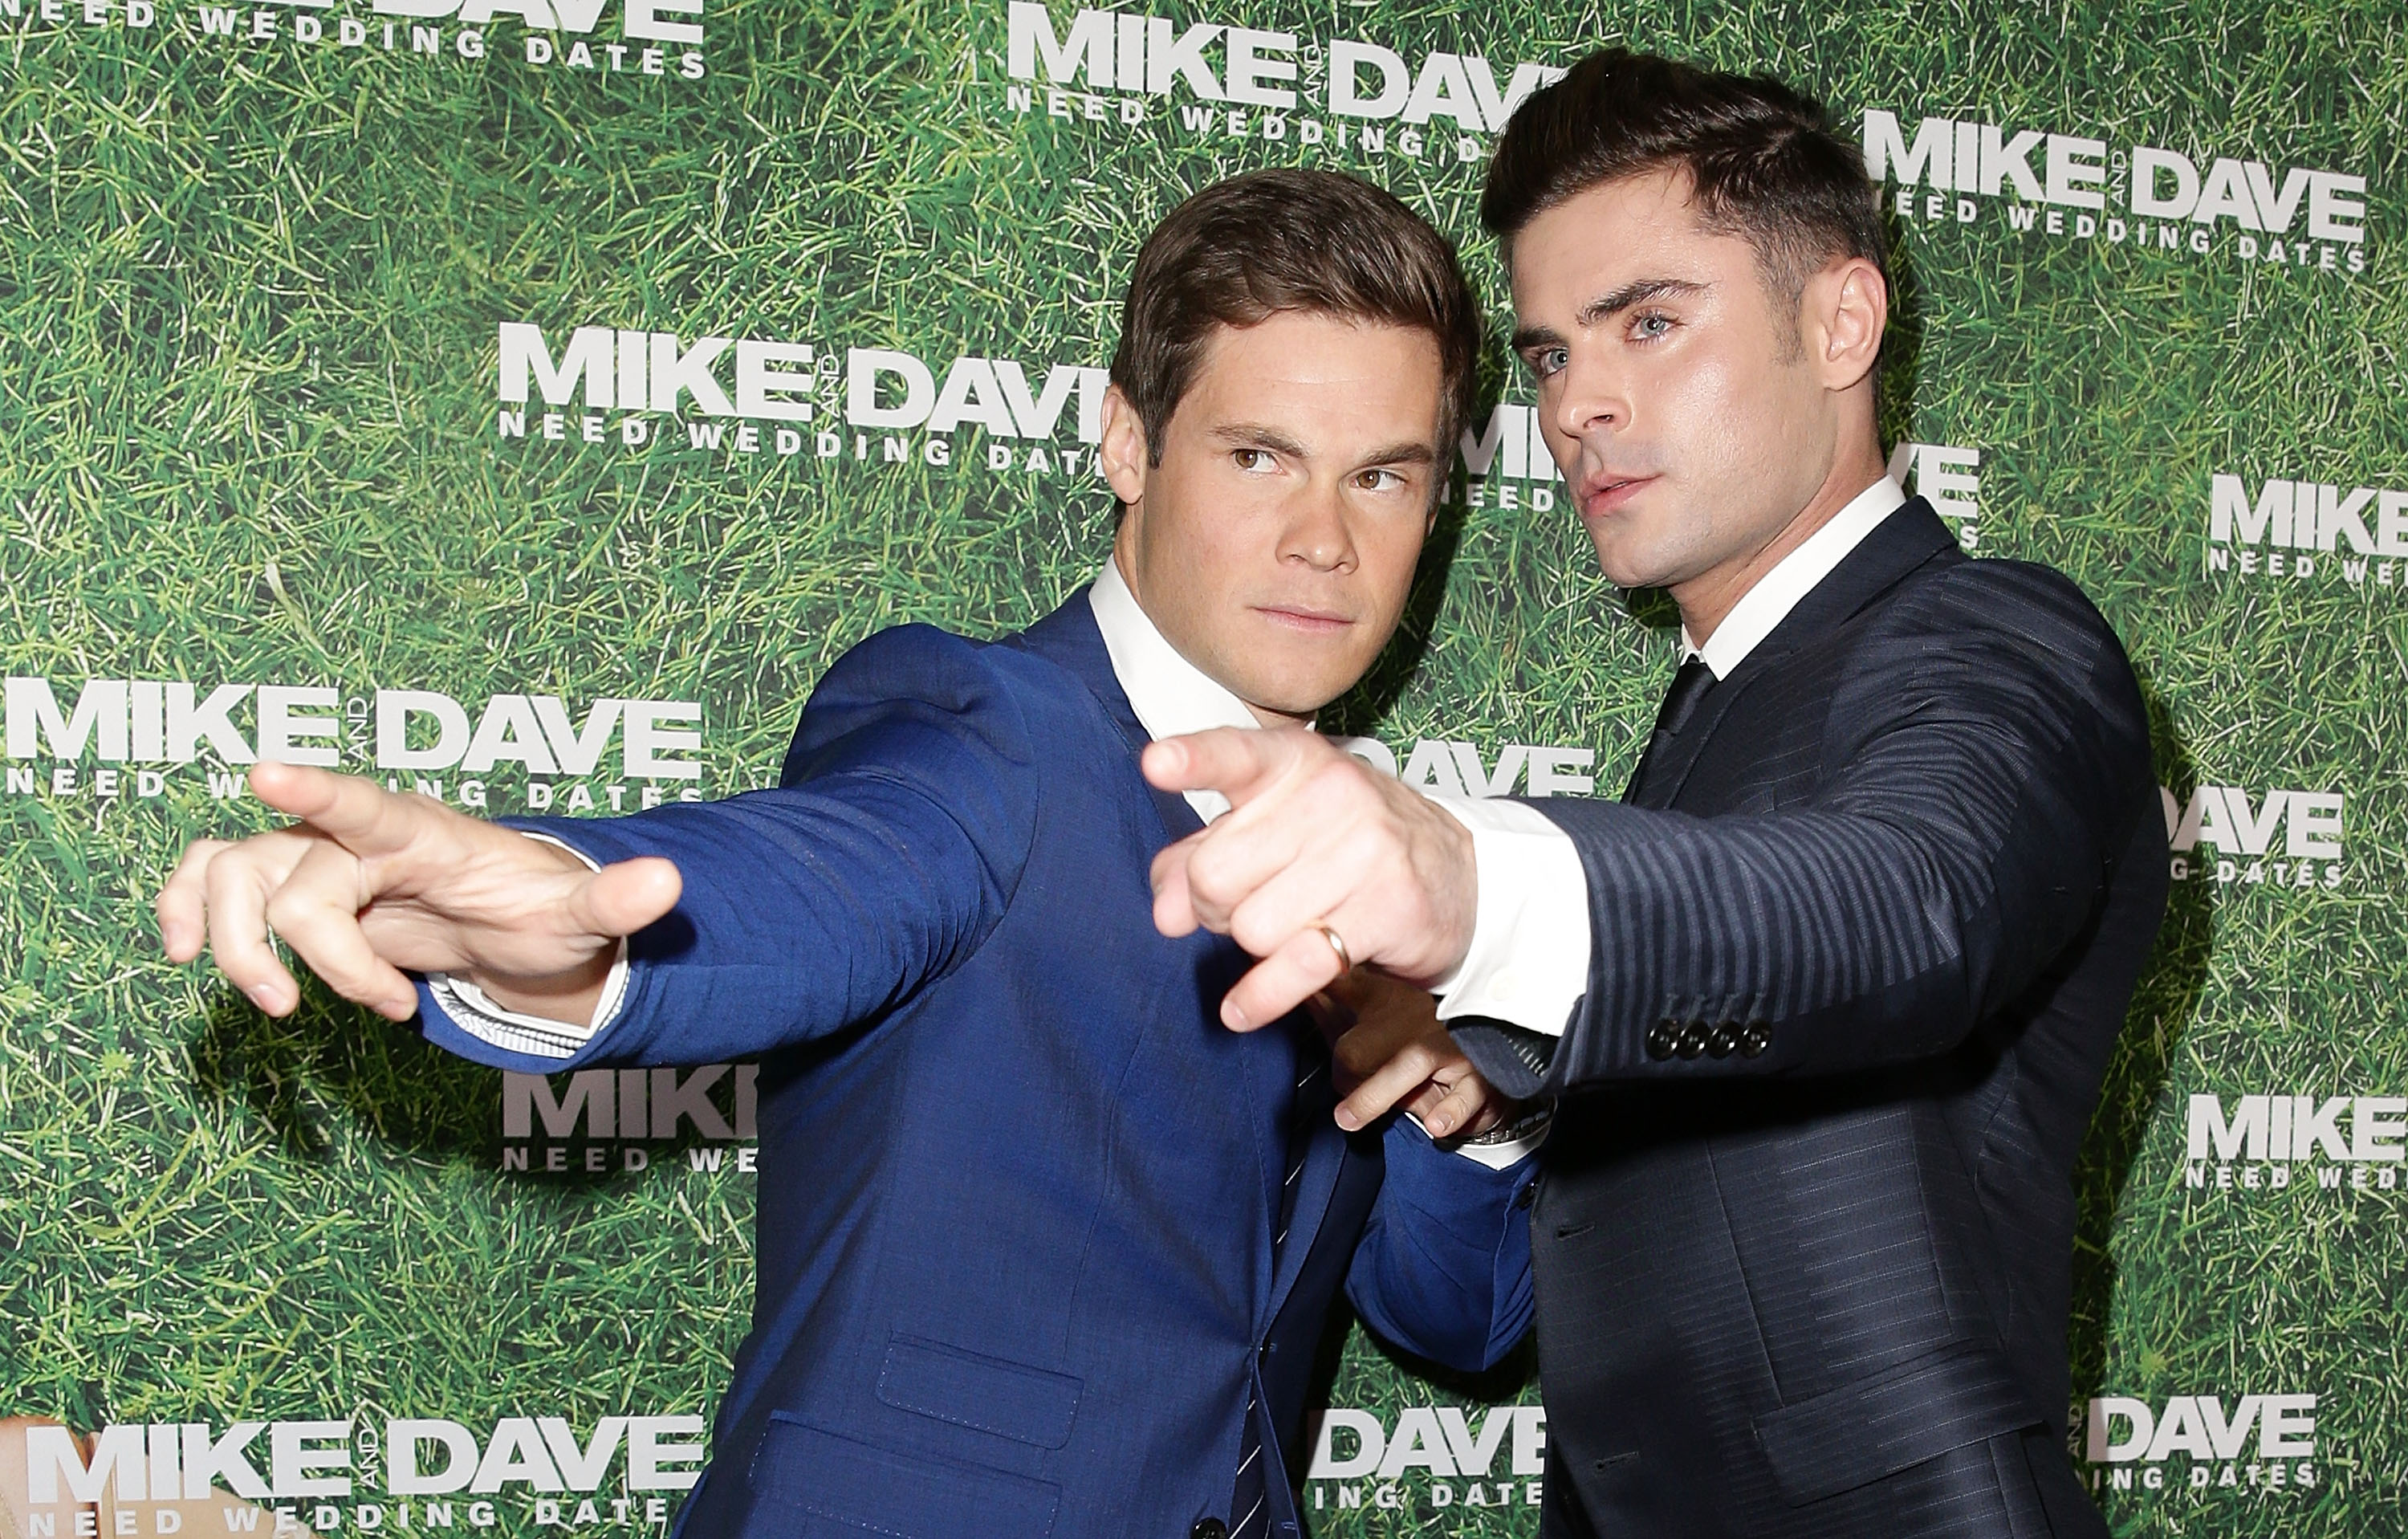 Zac Efron and Adam Devine at Mike And Dave Need We